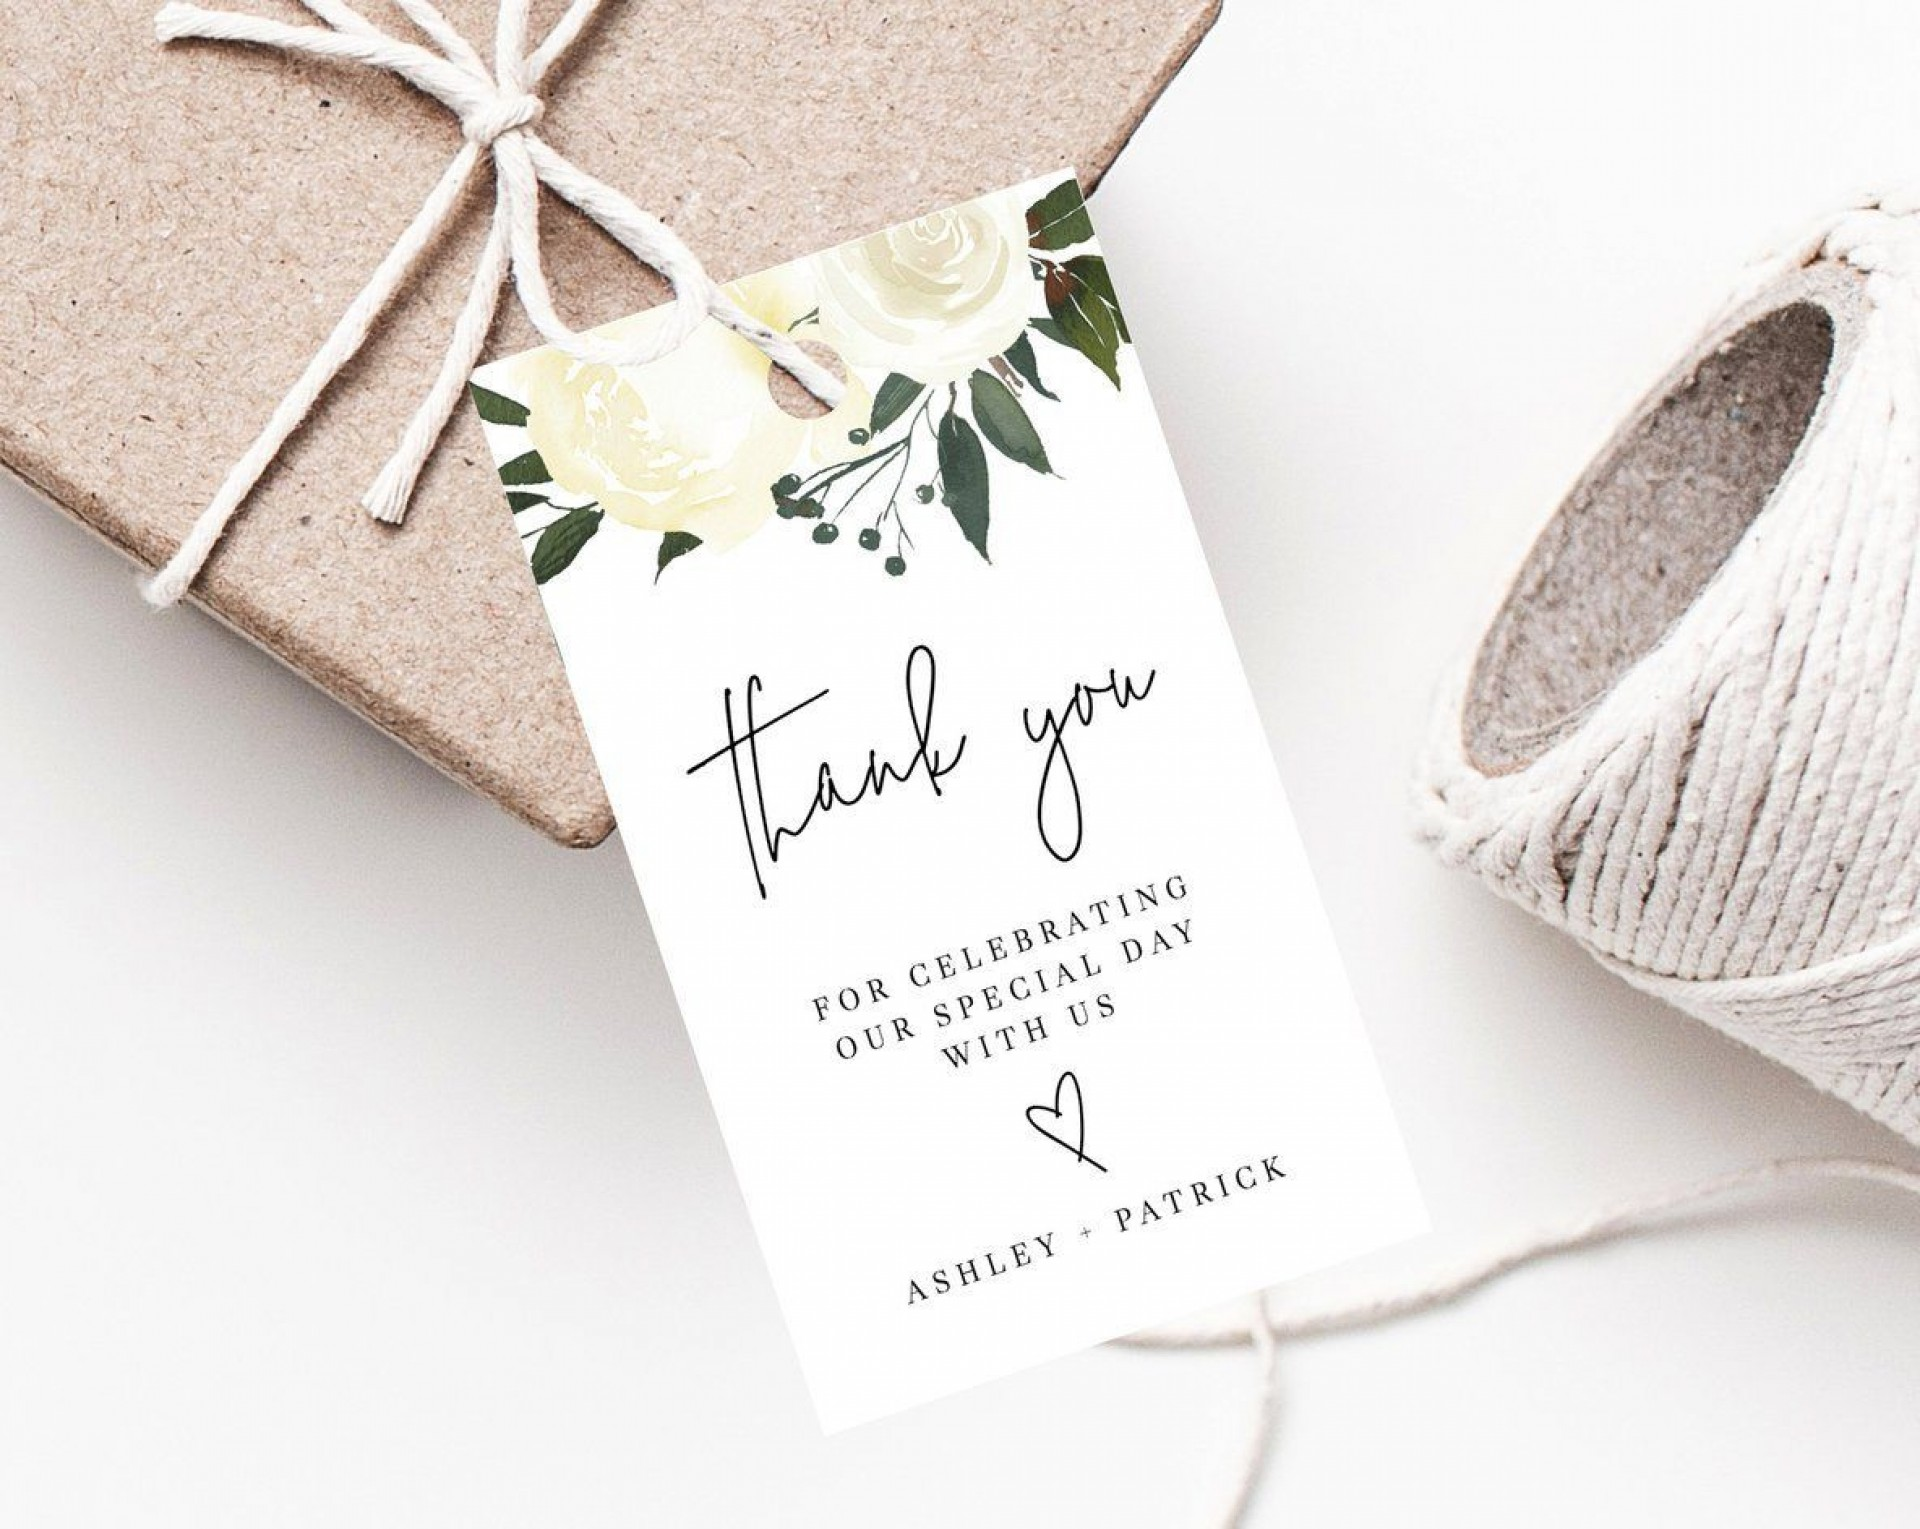 000 Unusual Wedding Favor Tag Template High Definition  Templates Editable Free Party Printable1920